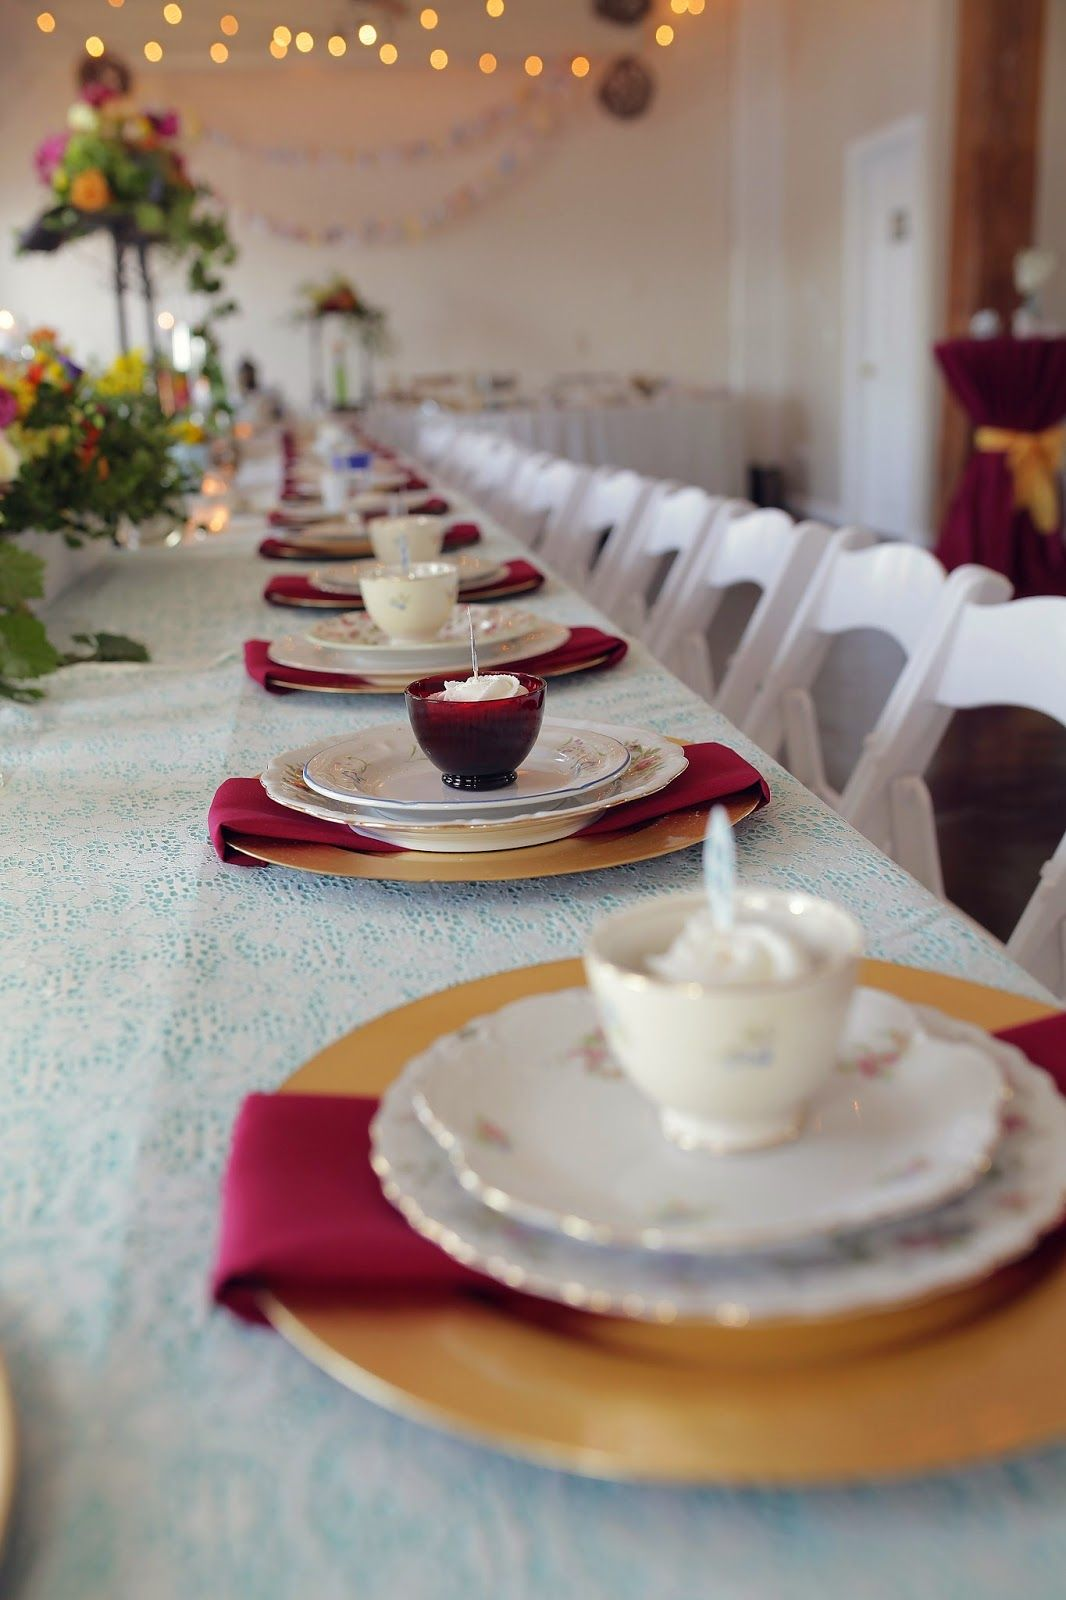 Alice in Wonderland Themed Wedding - Dinner Plate Setup with Teacups RSVP The RiverRoom Blog & Alice in Wonderland Themed Wedding - Dinner Plate Setup with Teacups ...